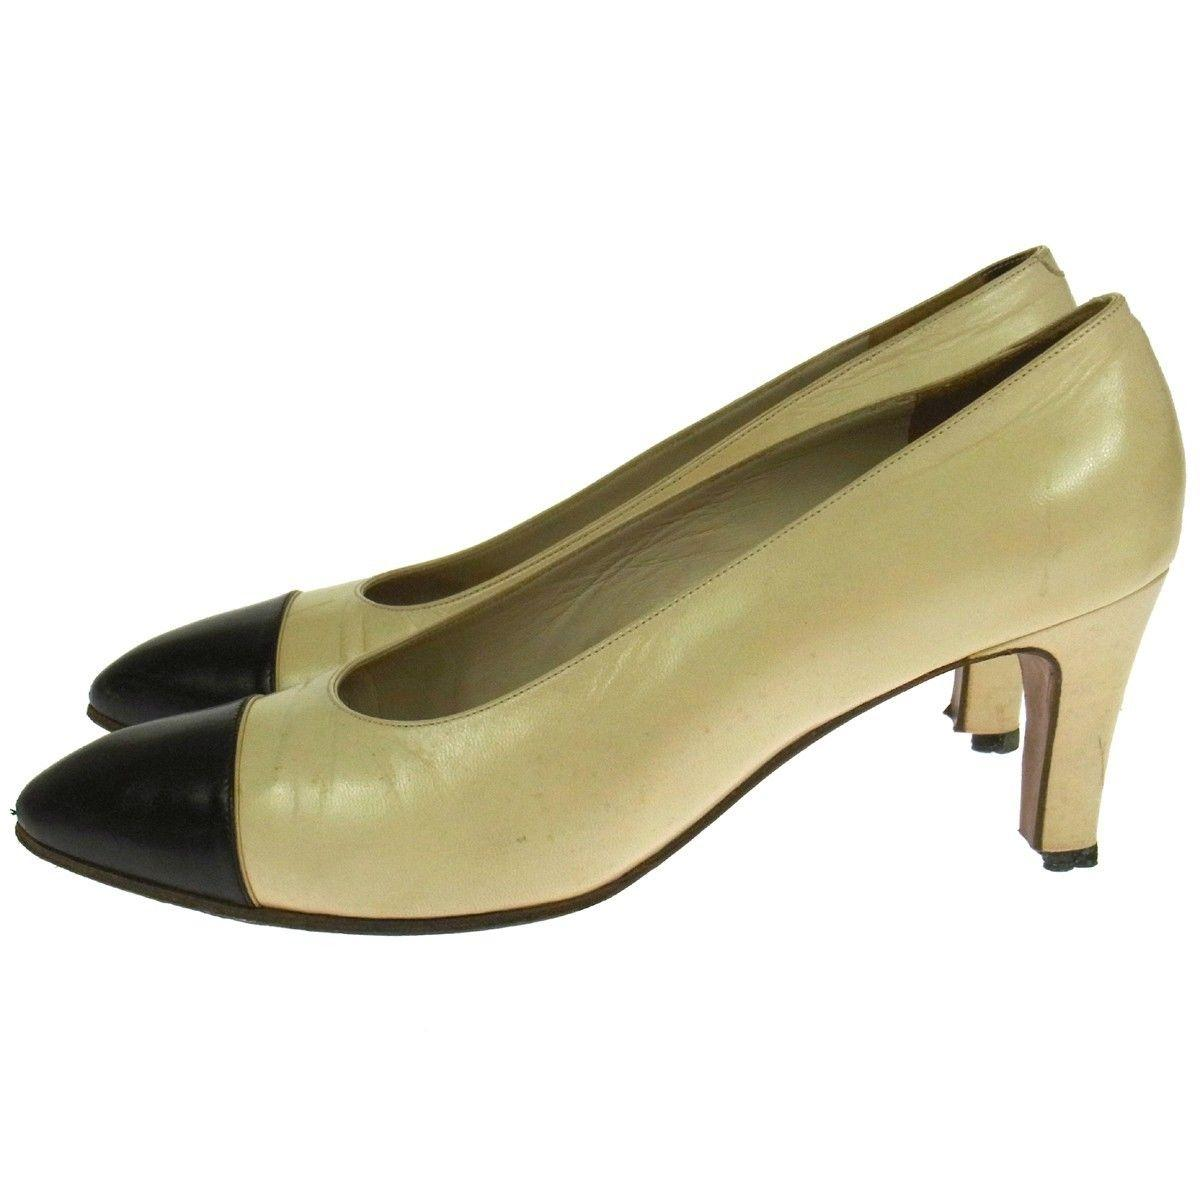 CHANEL Cap Toe Pumps, Size: 7, Used